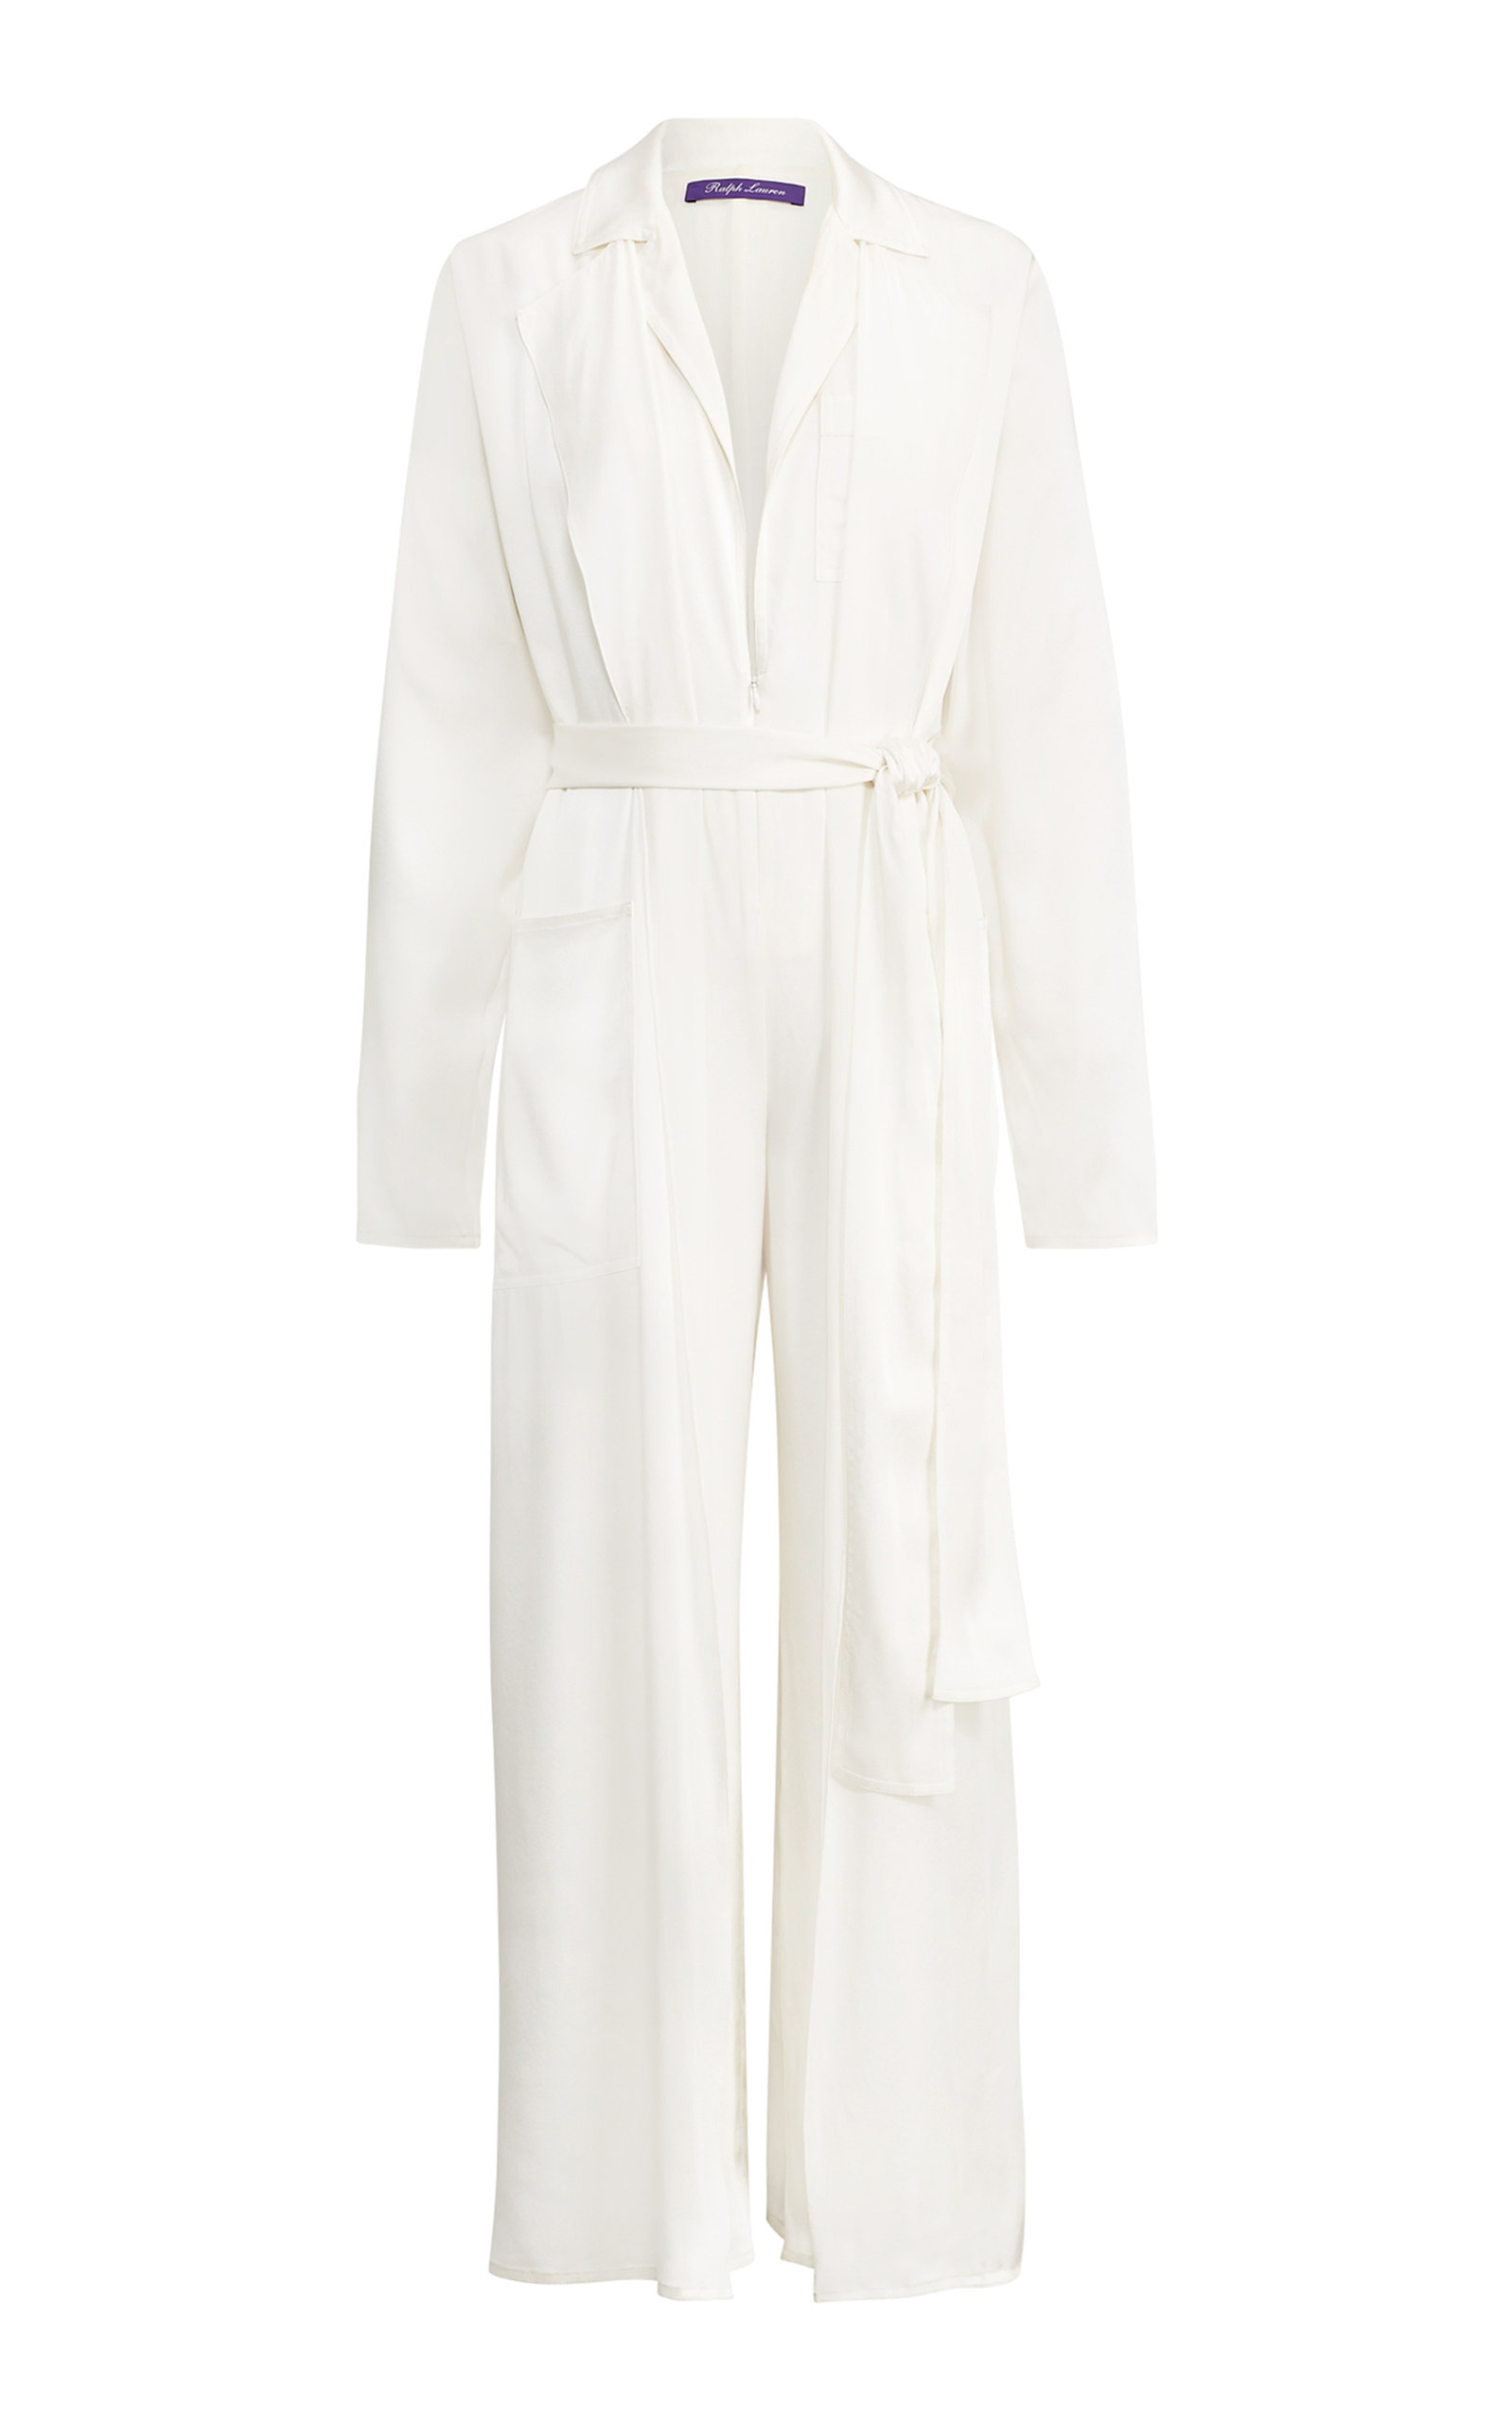 04137dae985 Ralph LaurenO Reilly Charmeuse Jumpsuit. CLOSE. Loading